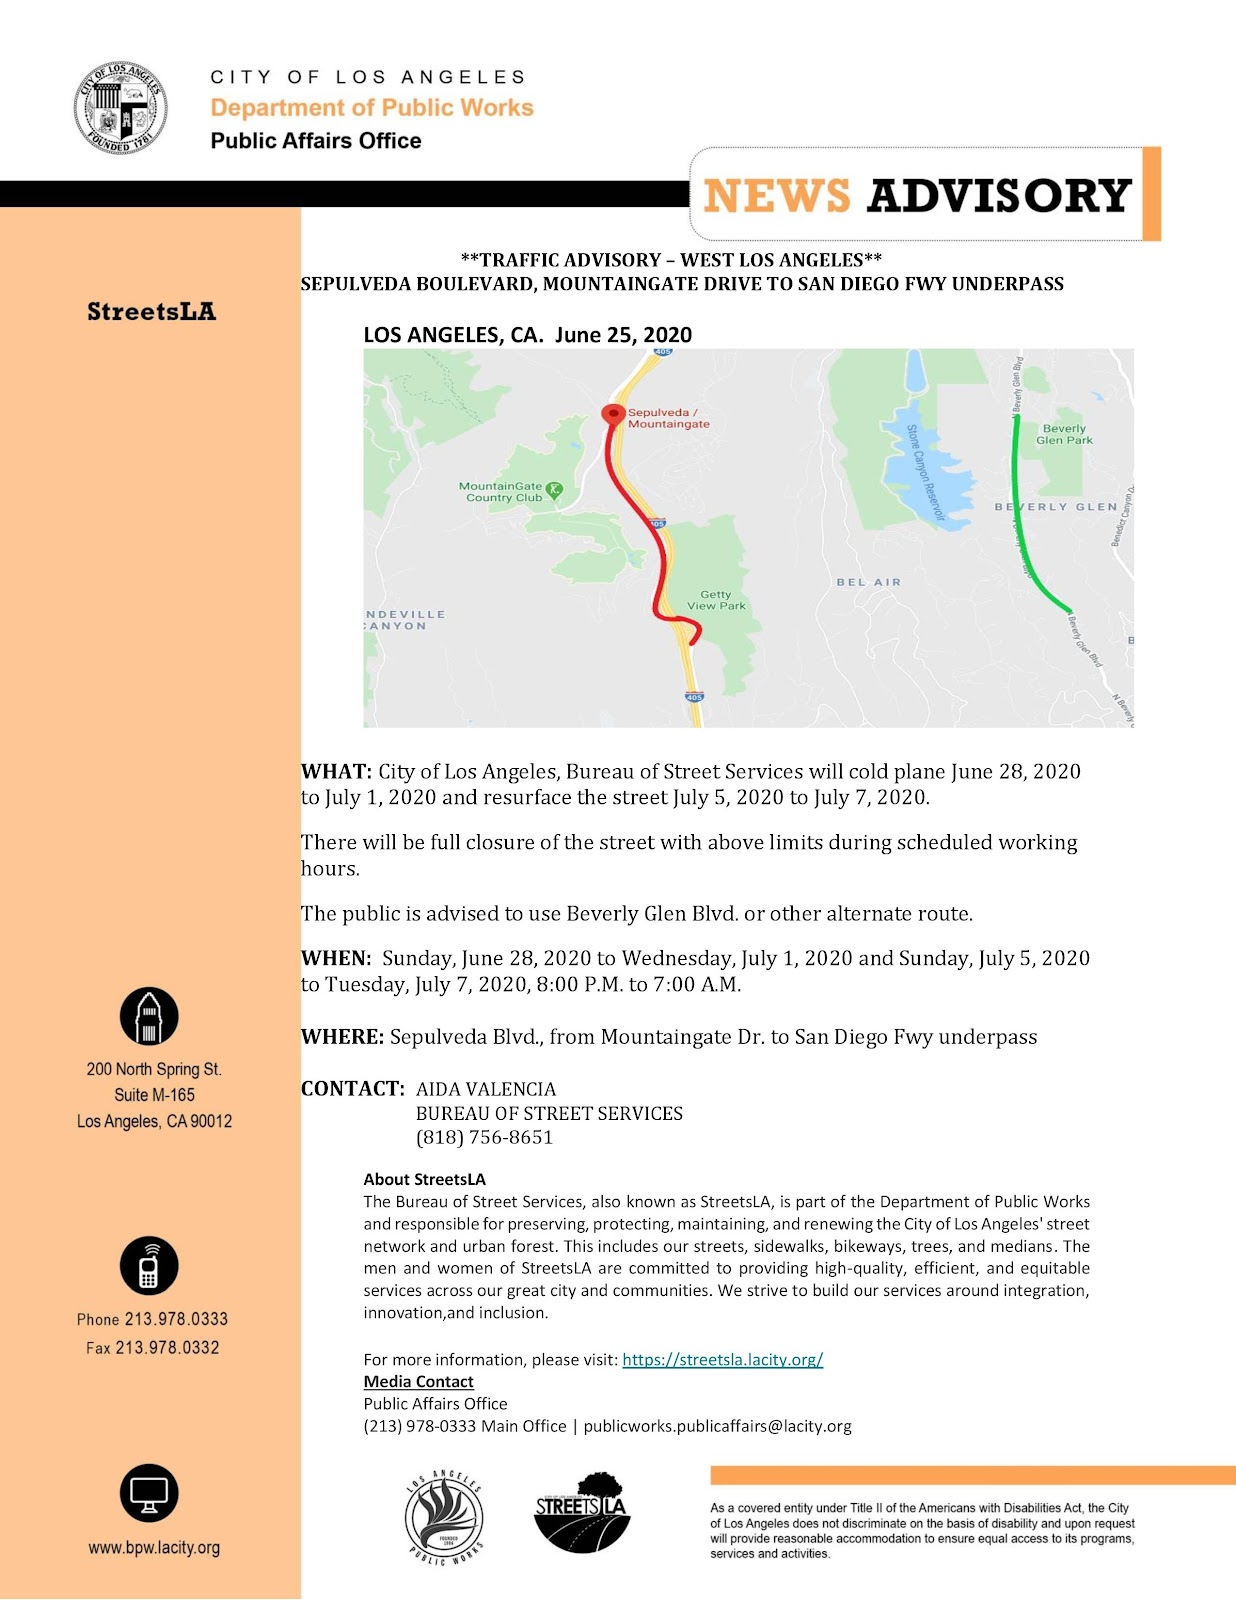 Dept of Public Works Traffic Advisory Sepulveda Starting June 28